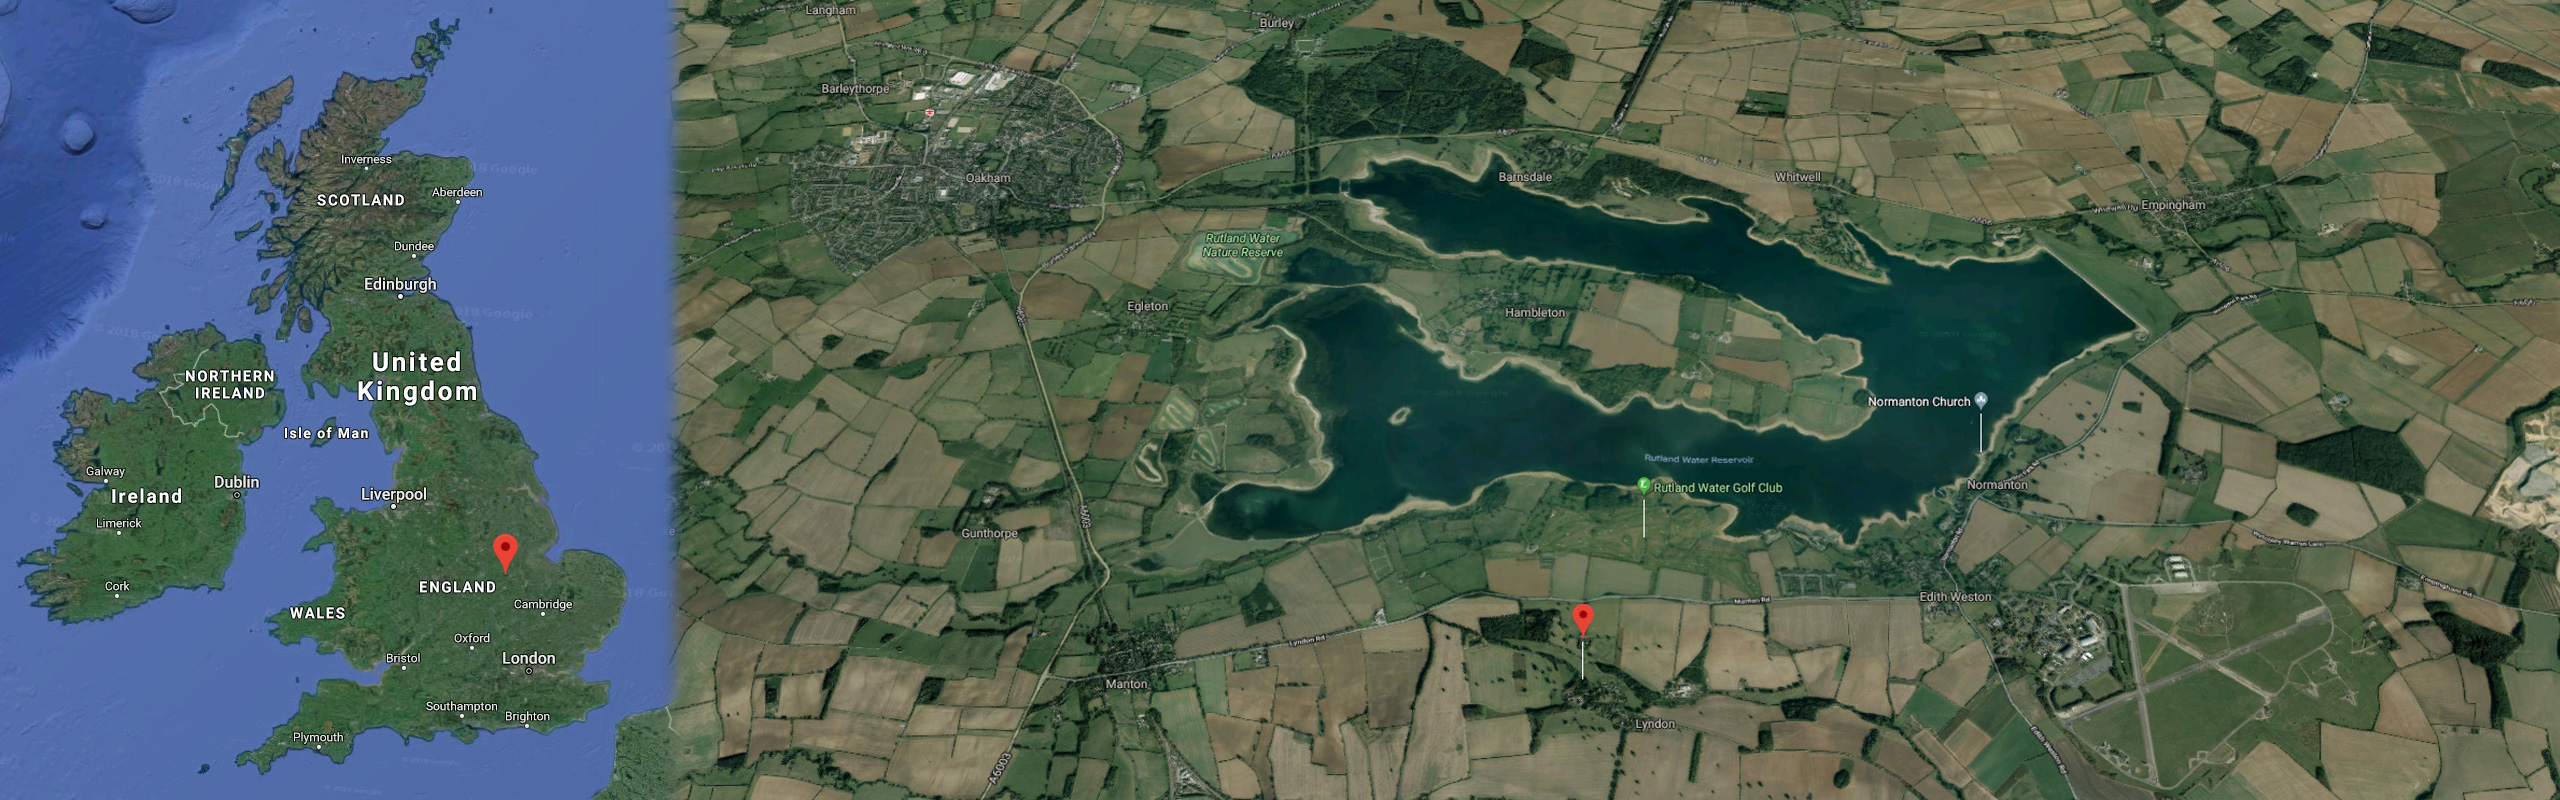 Lyndon in Rutland aerial view image.